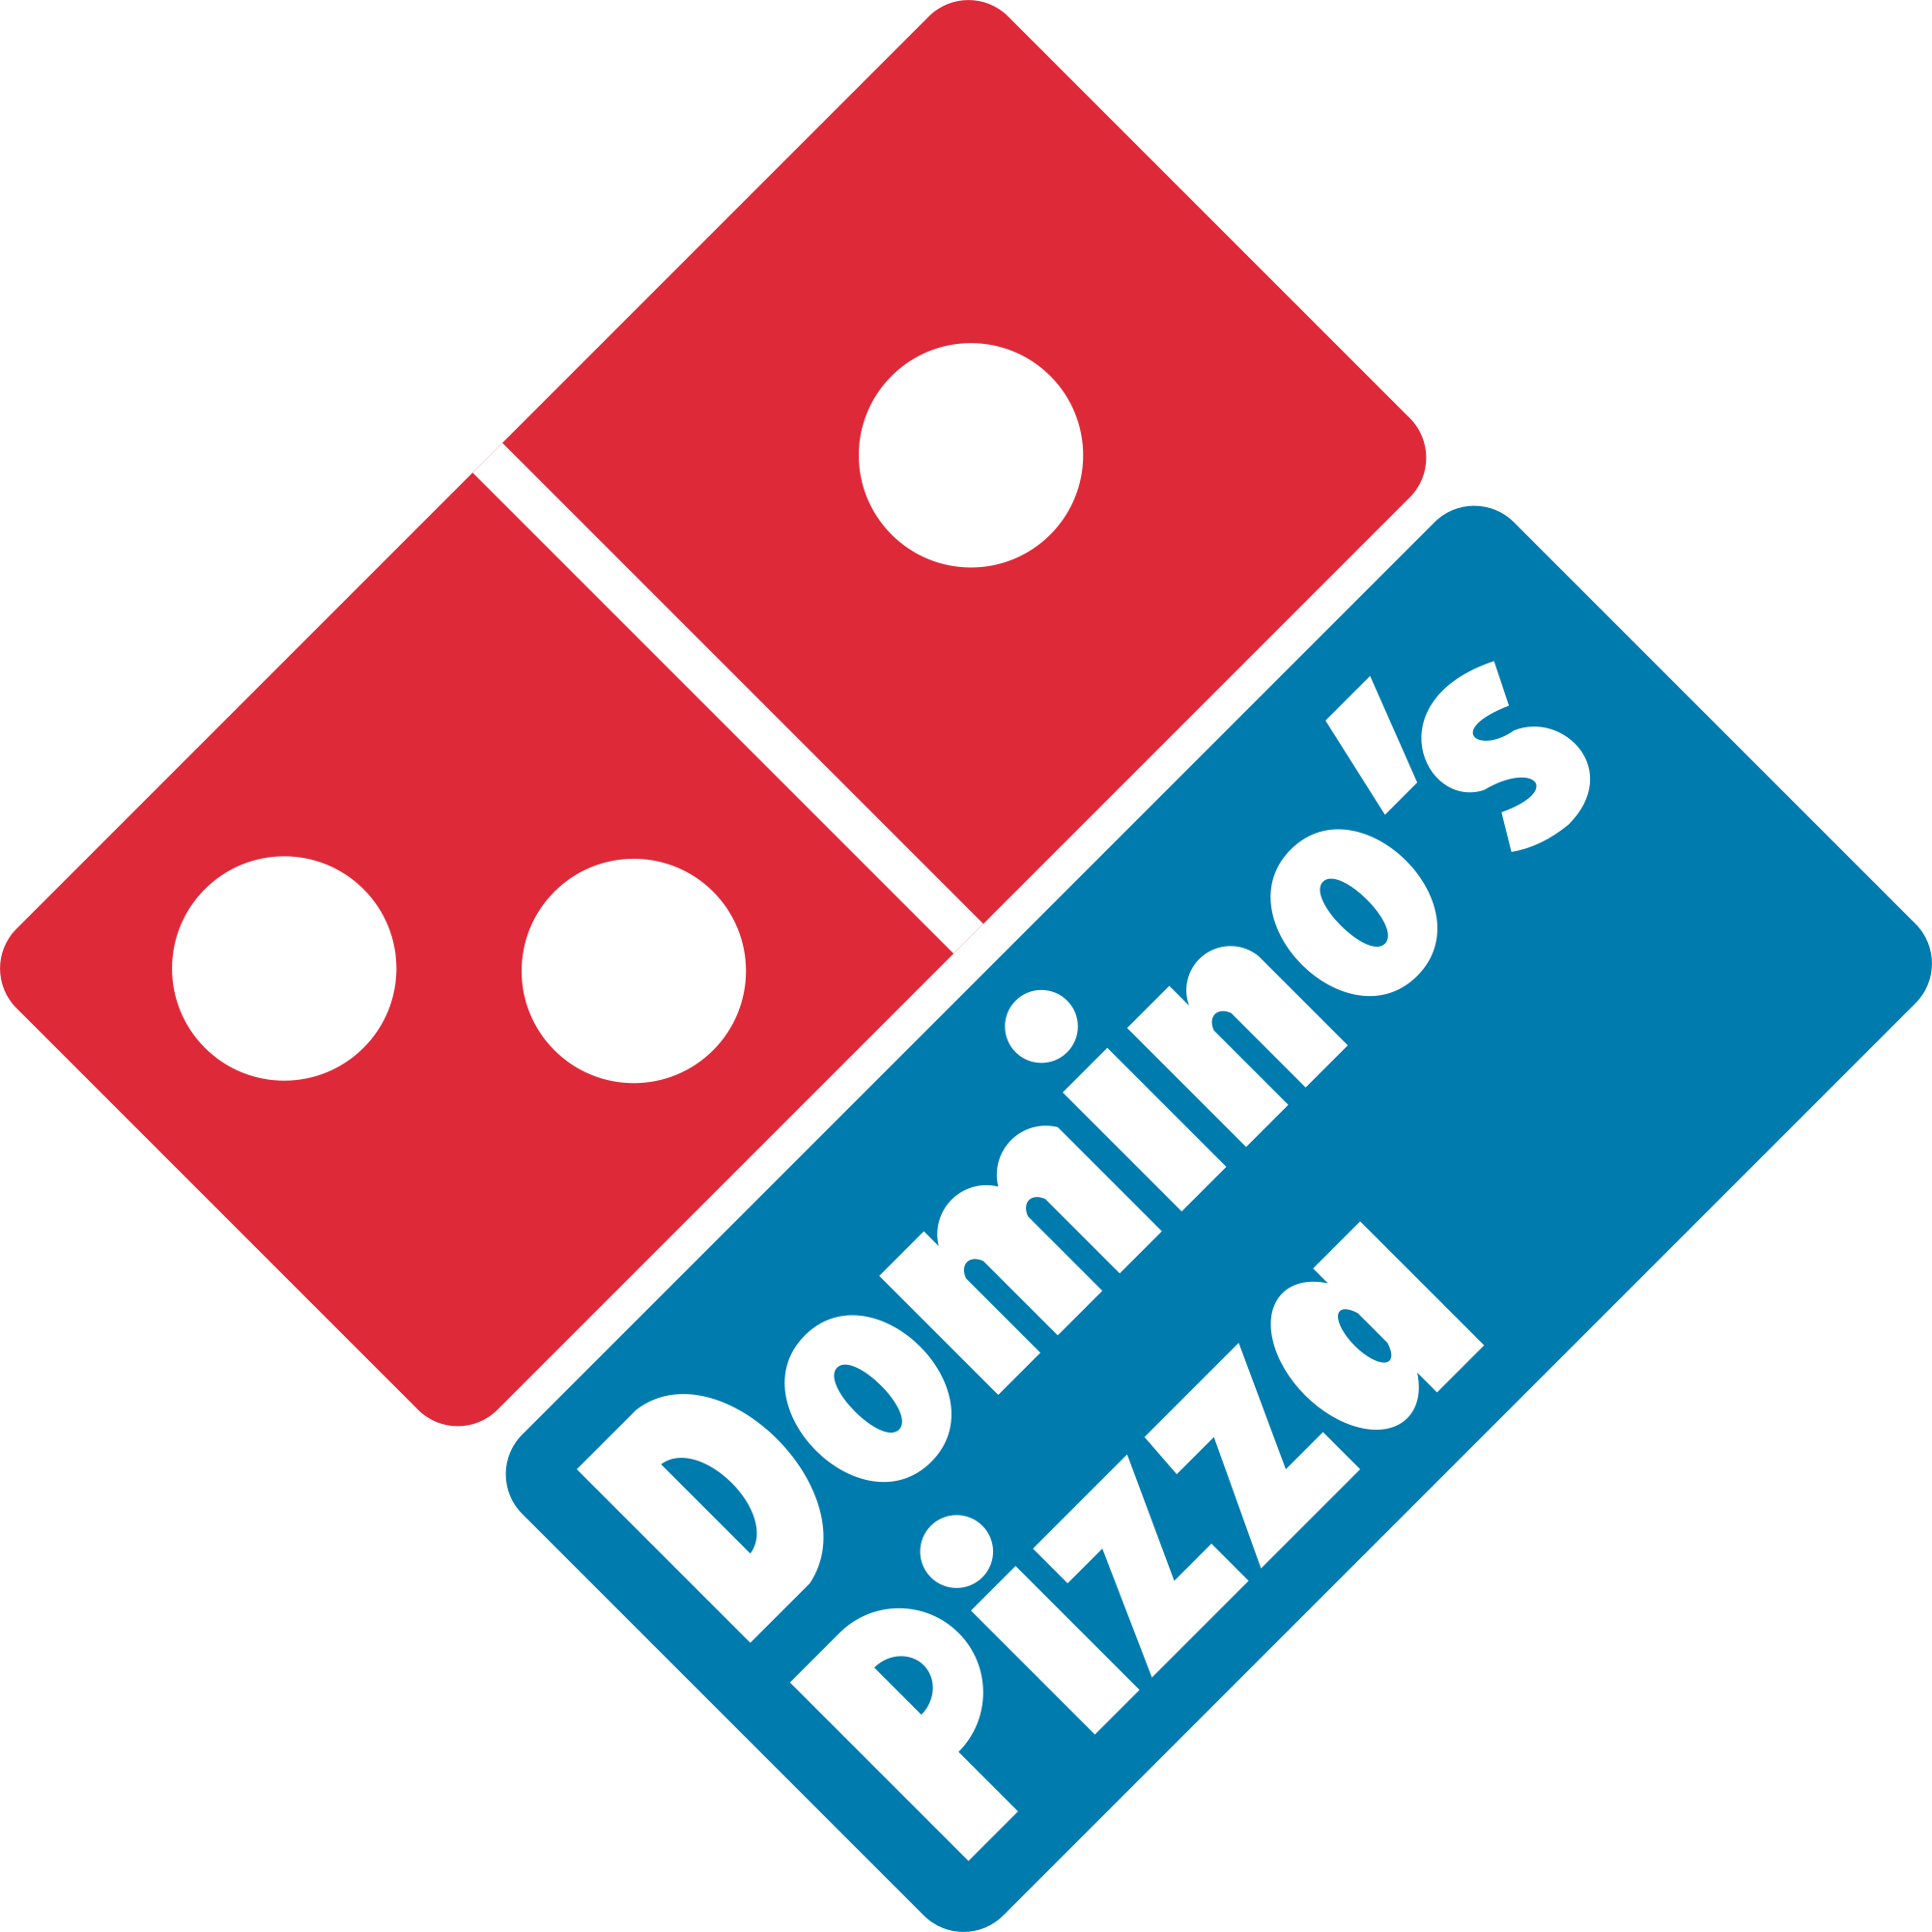 Domino's Pizza: Exhibiting at the Takeaway & Restaurant Innovation Expo